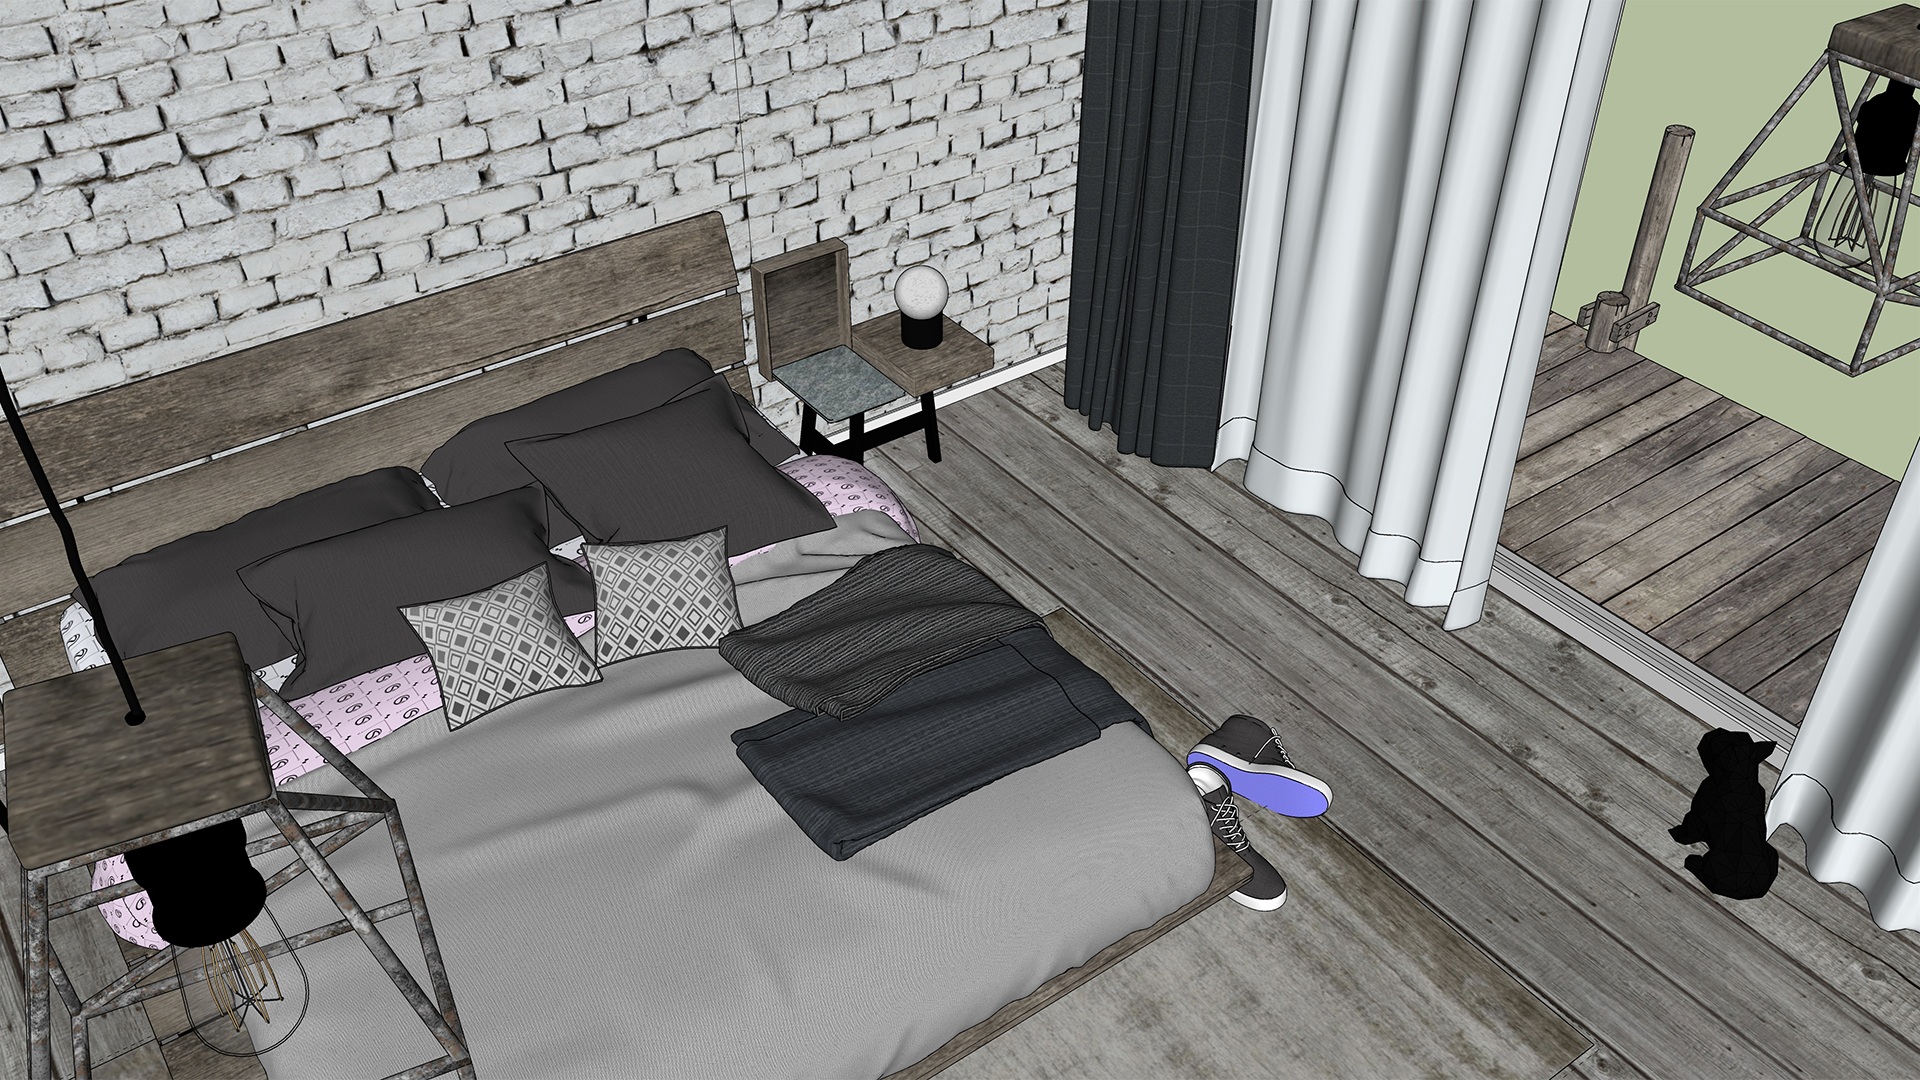 Industrial Bedroom View 4 Screenshot 1920.jpg